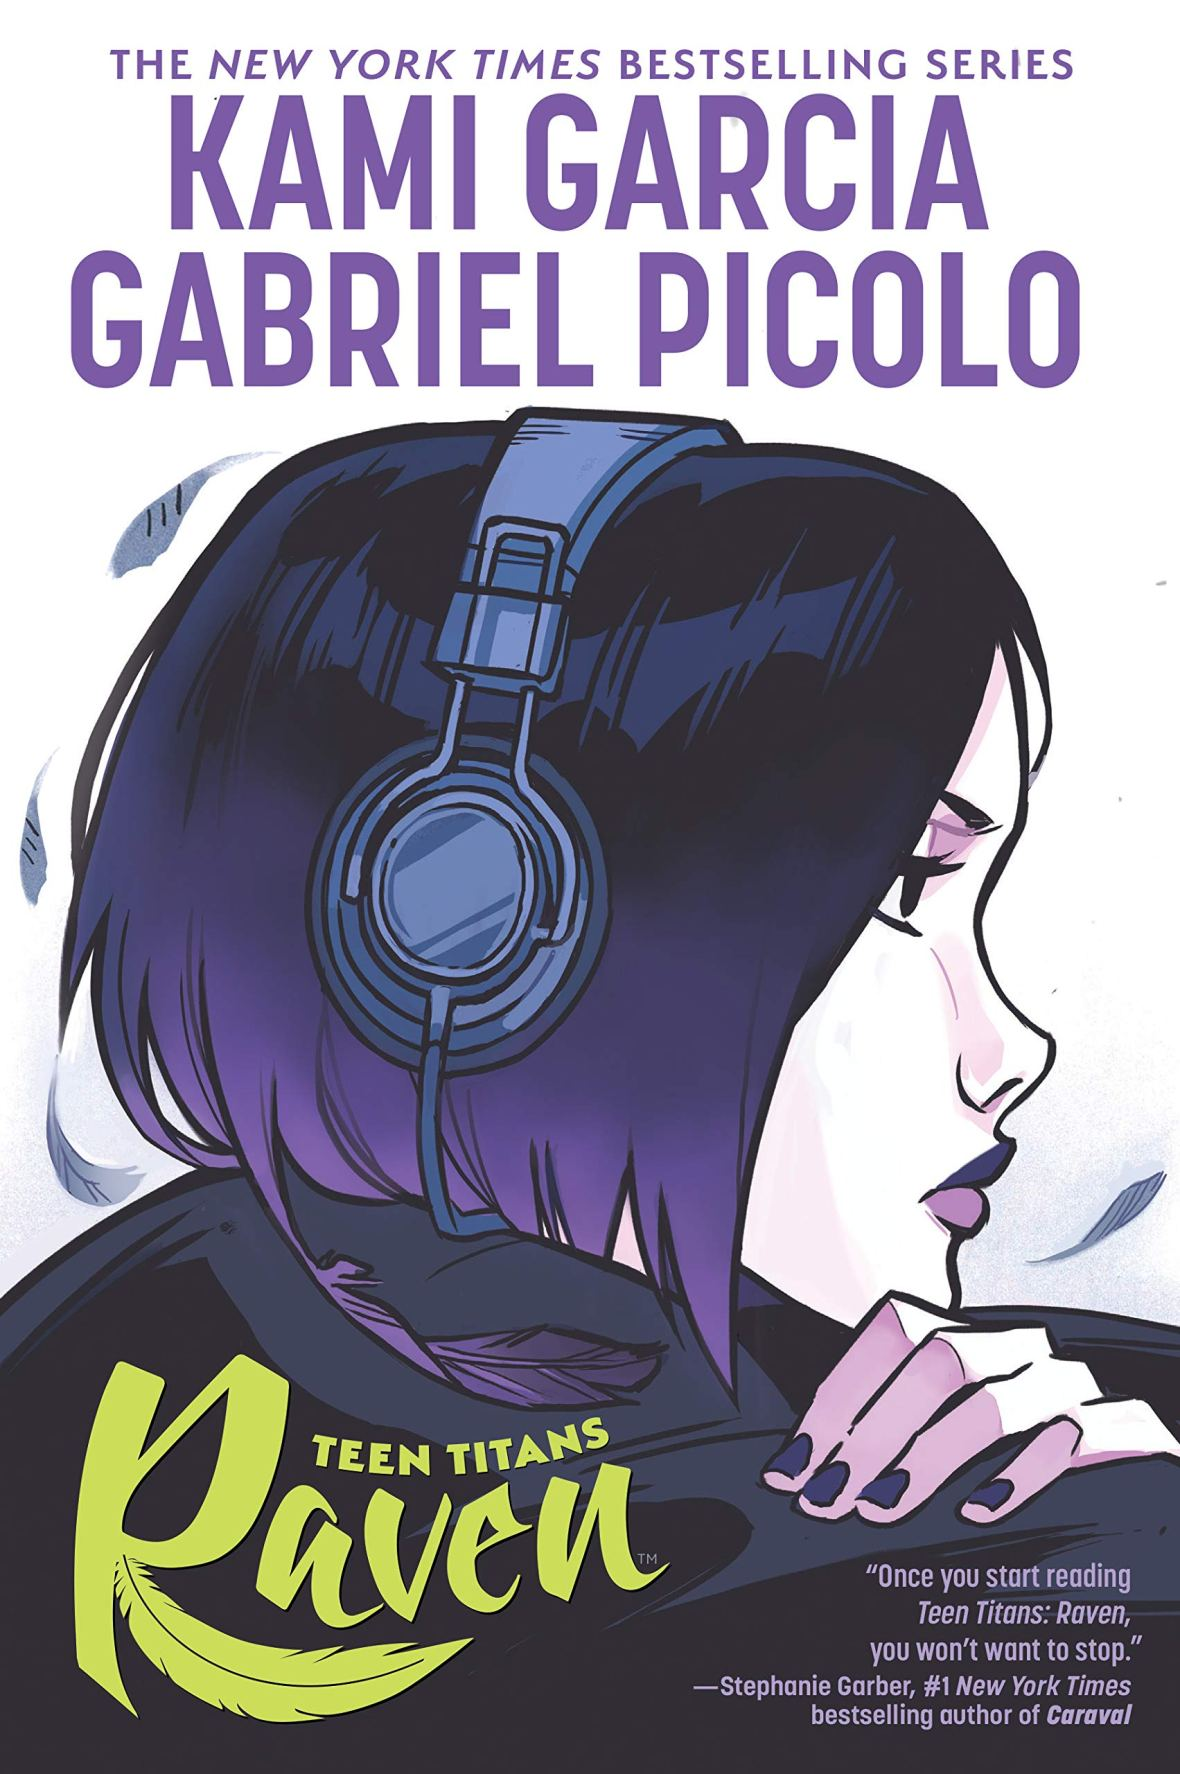 Girl with Purple Hair Wearing Headphones